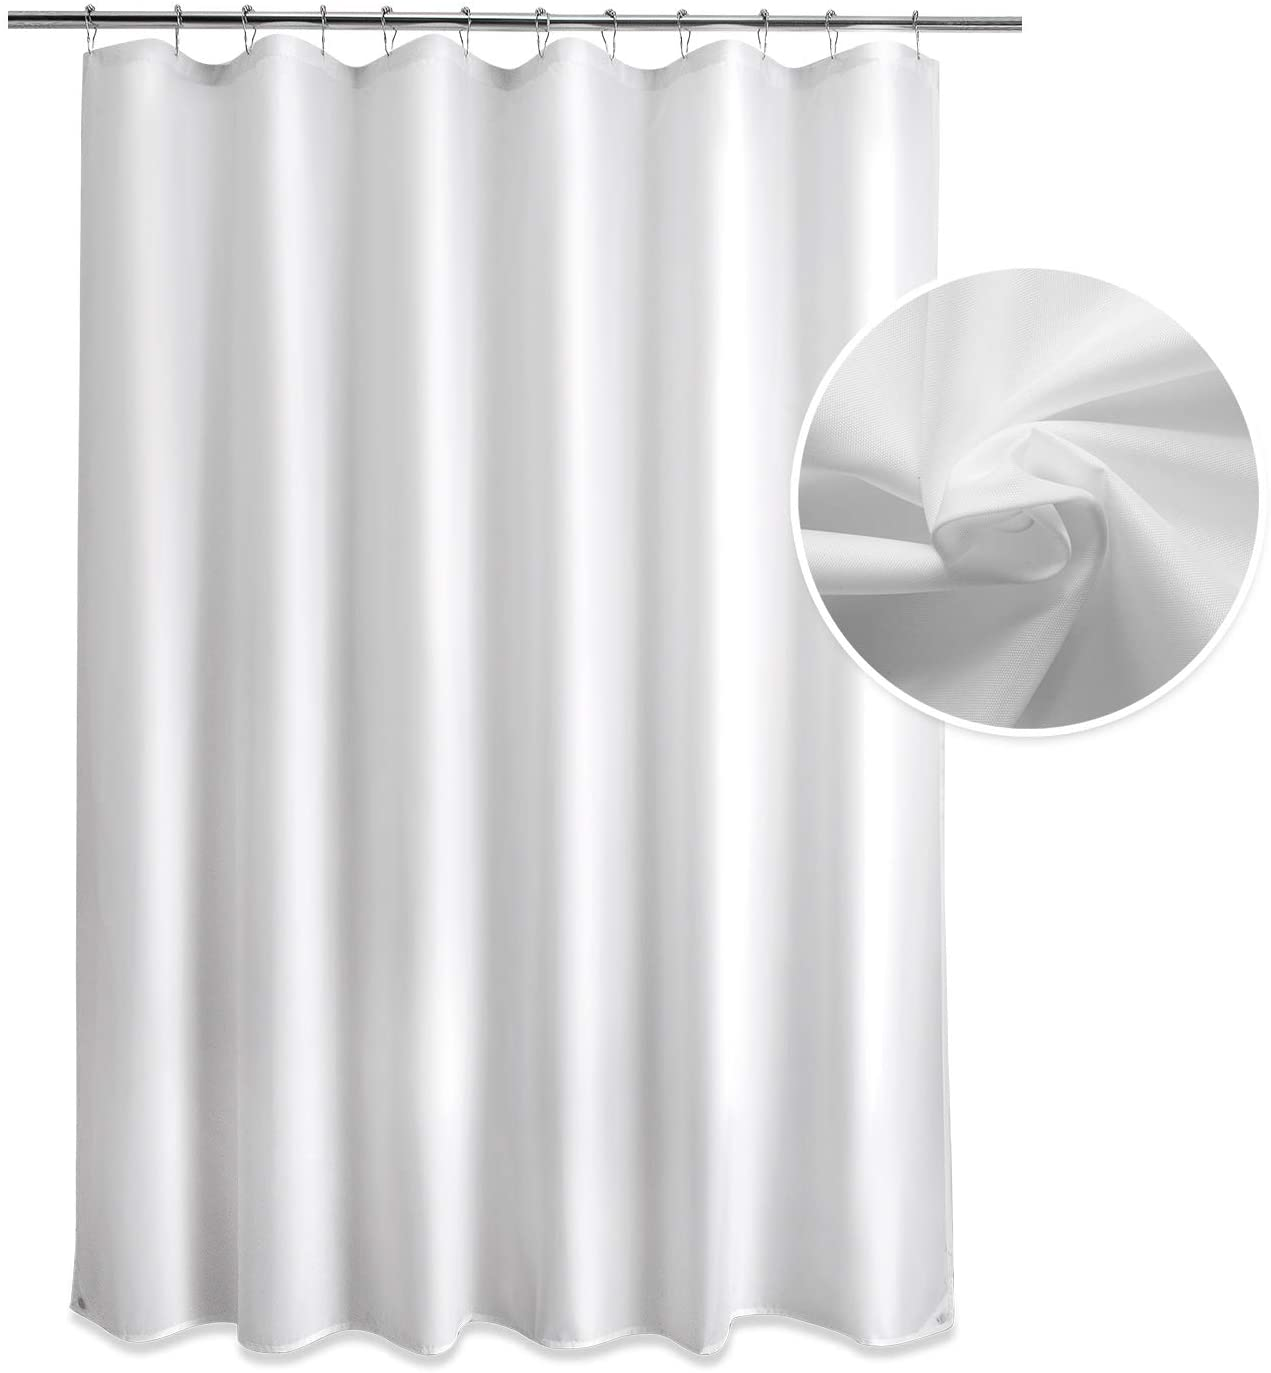 Titanker Fabric Shower Curtain Liner, White Shower Curtain Liner with 2 Magnets, Waterproof Polyester Shower Curtains Bathroom 85GSM Shower Curtain Liners, Machine Washable, 70 x 72 Inches